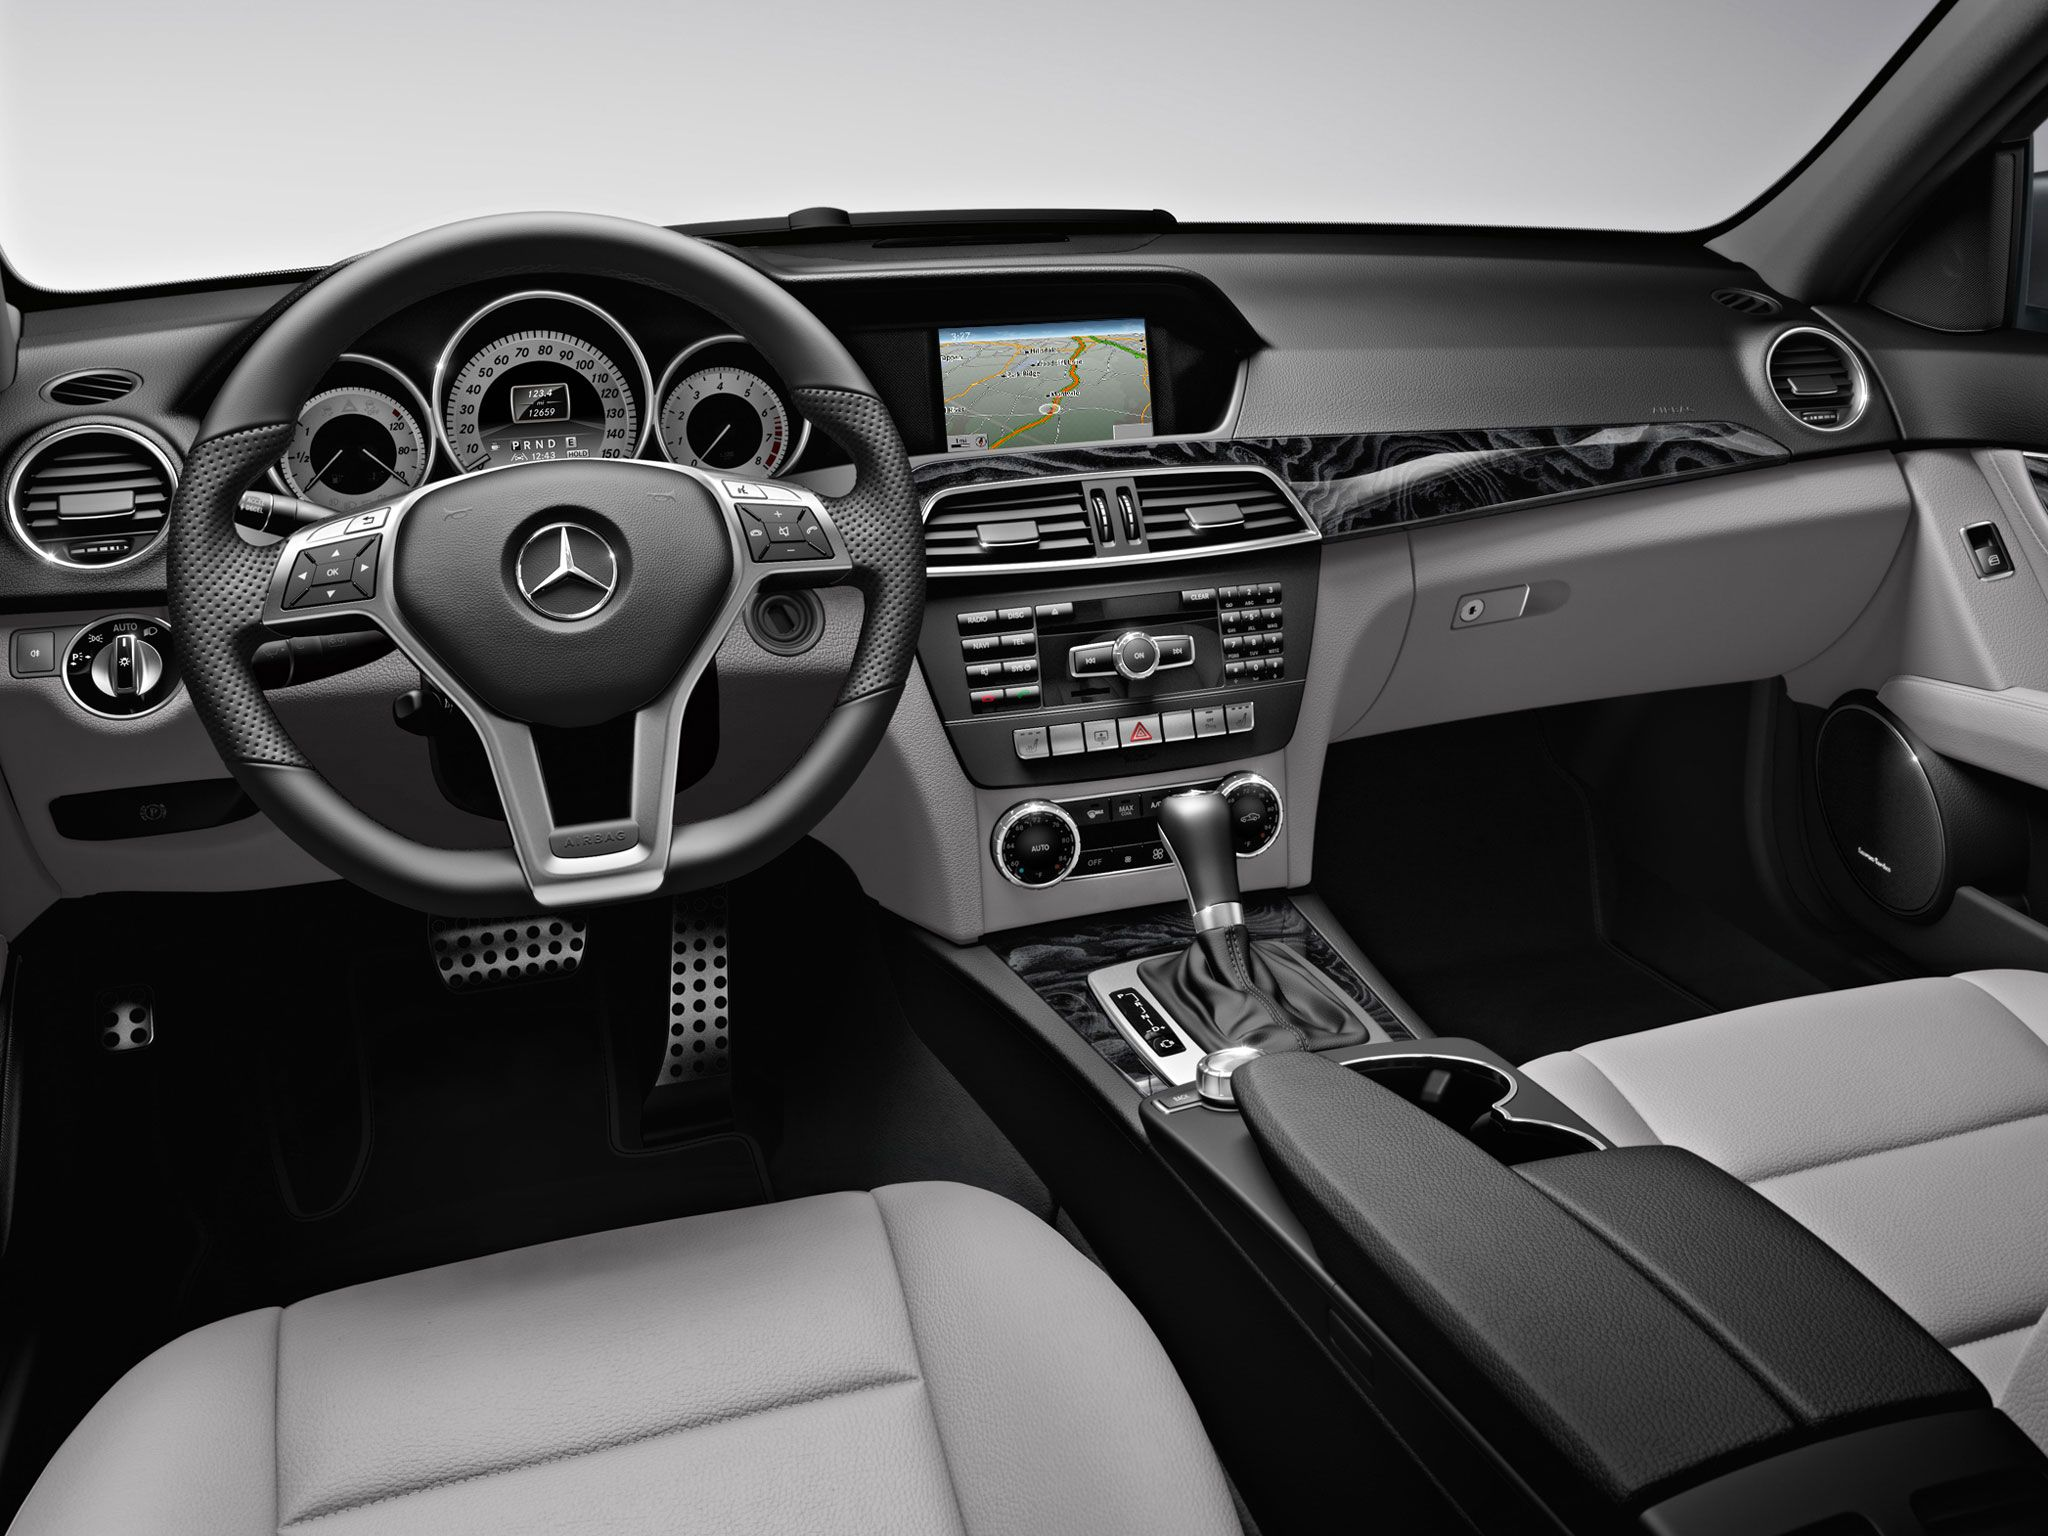 Mercedes C Class Photo Gallery With Images Mercedes Benz C300